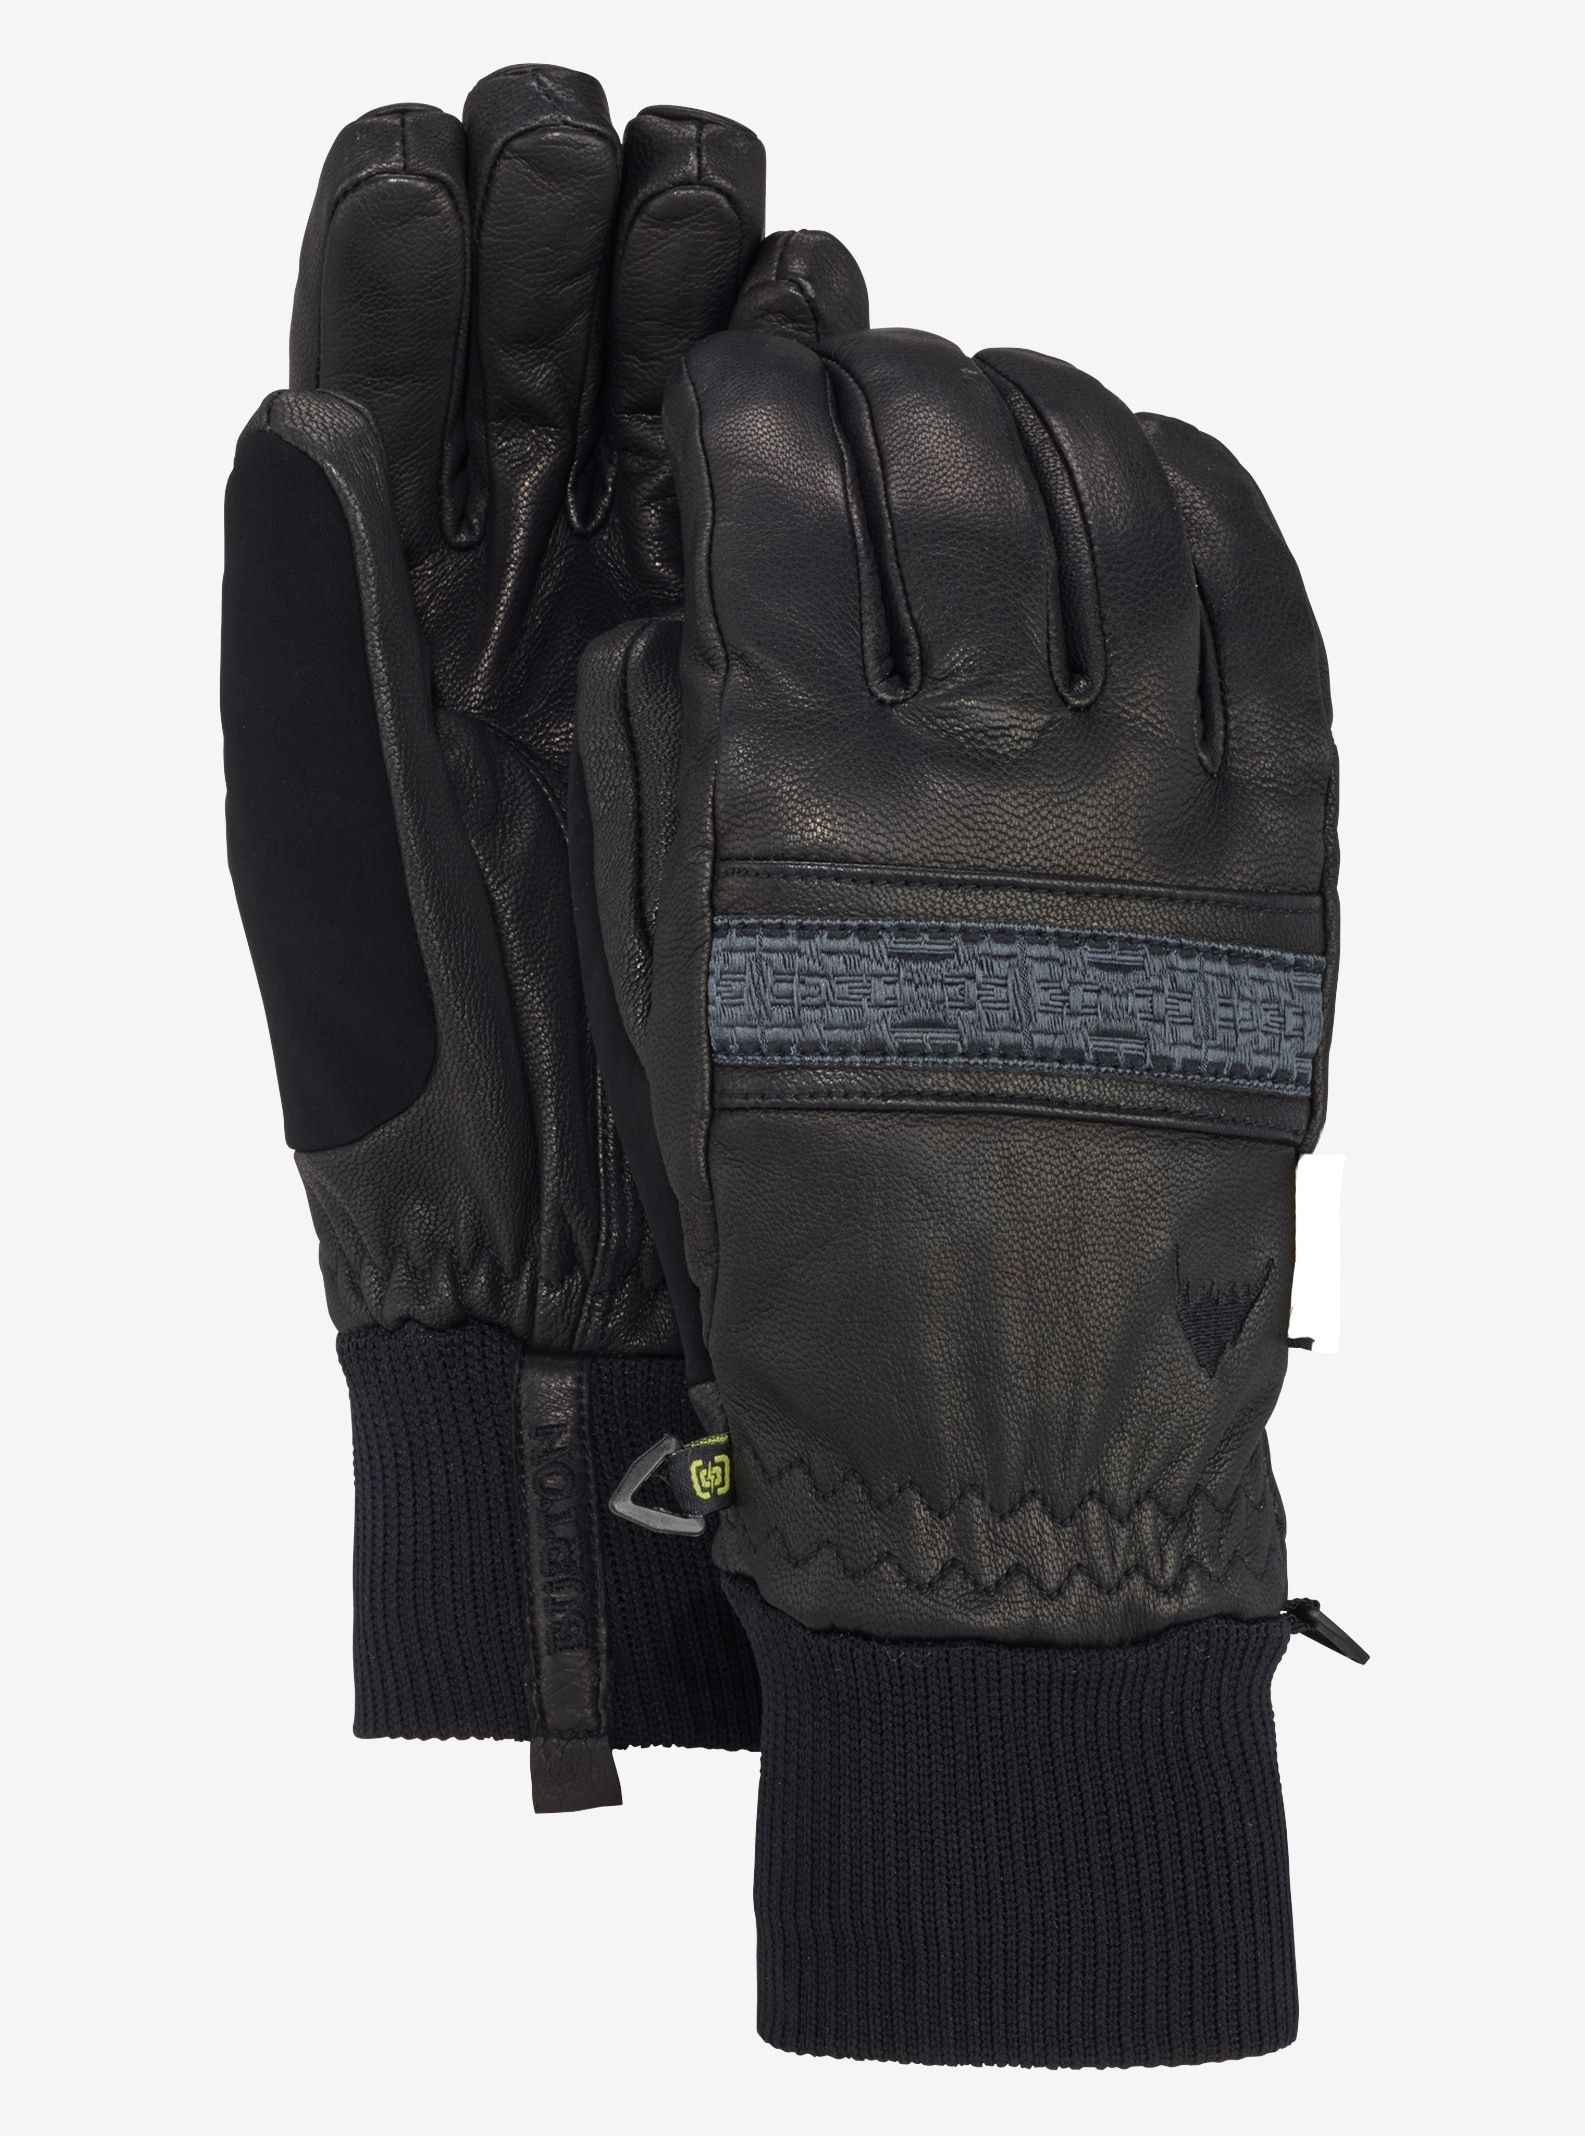 Women's Burton Free Range Glove shown in True Black